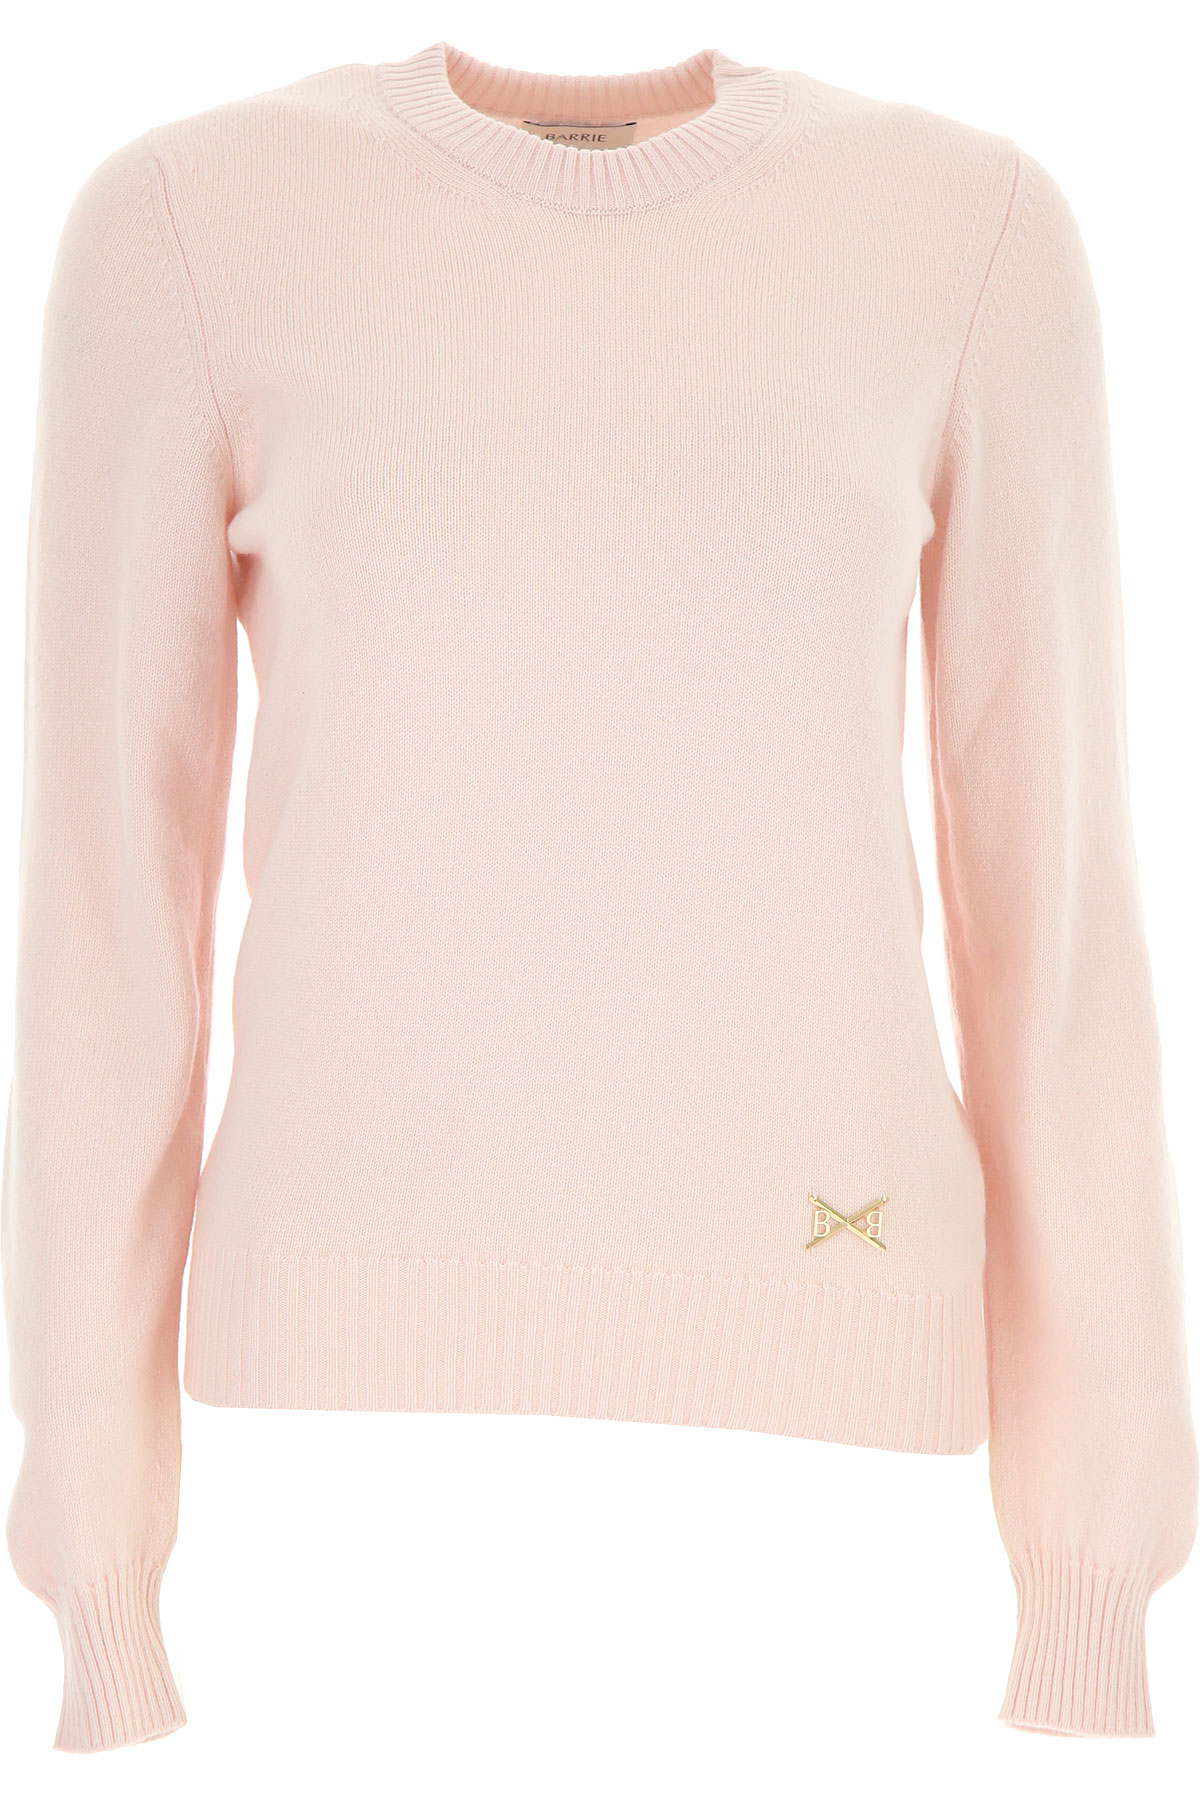 Barrie Sweater for Women Jumper On Sale, Skin Rose, Cashemere, 2019, 4 6